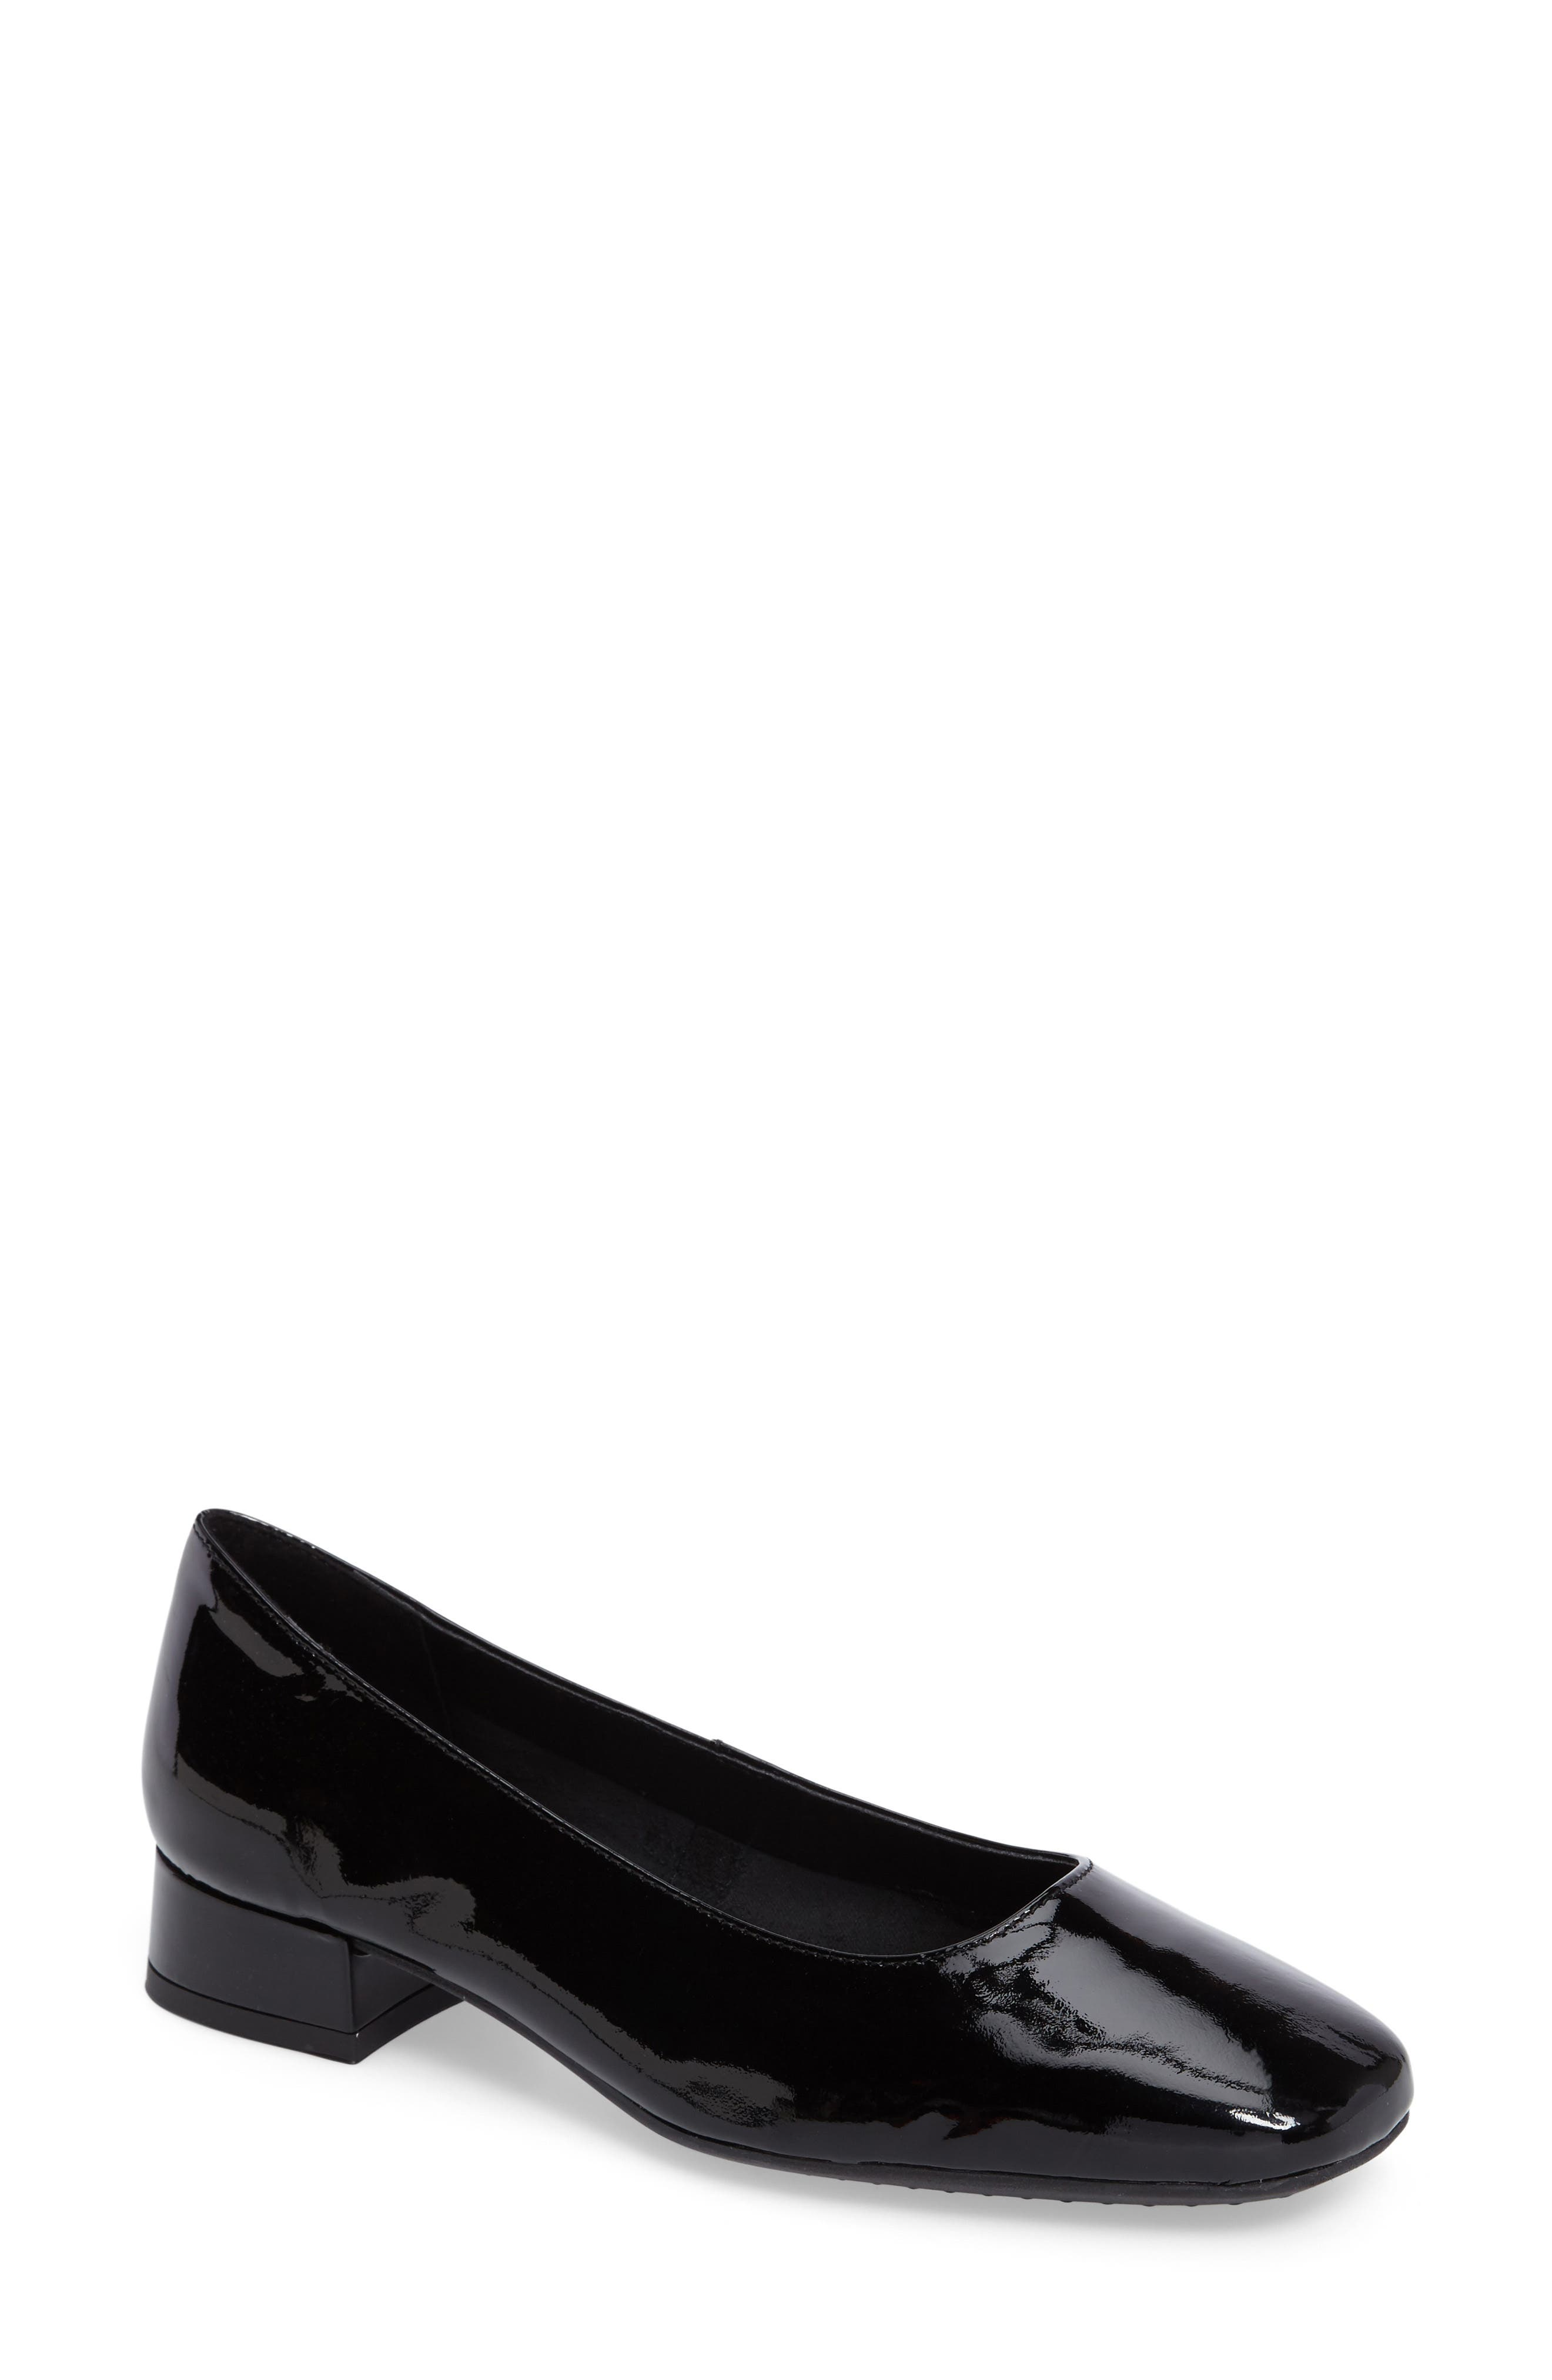 The FLEXX 'Longly' Square Toe Pump (Women)